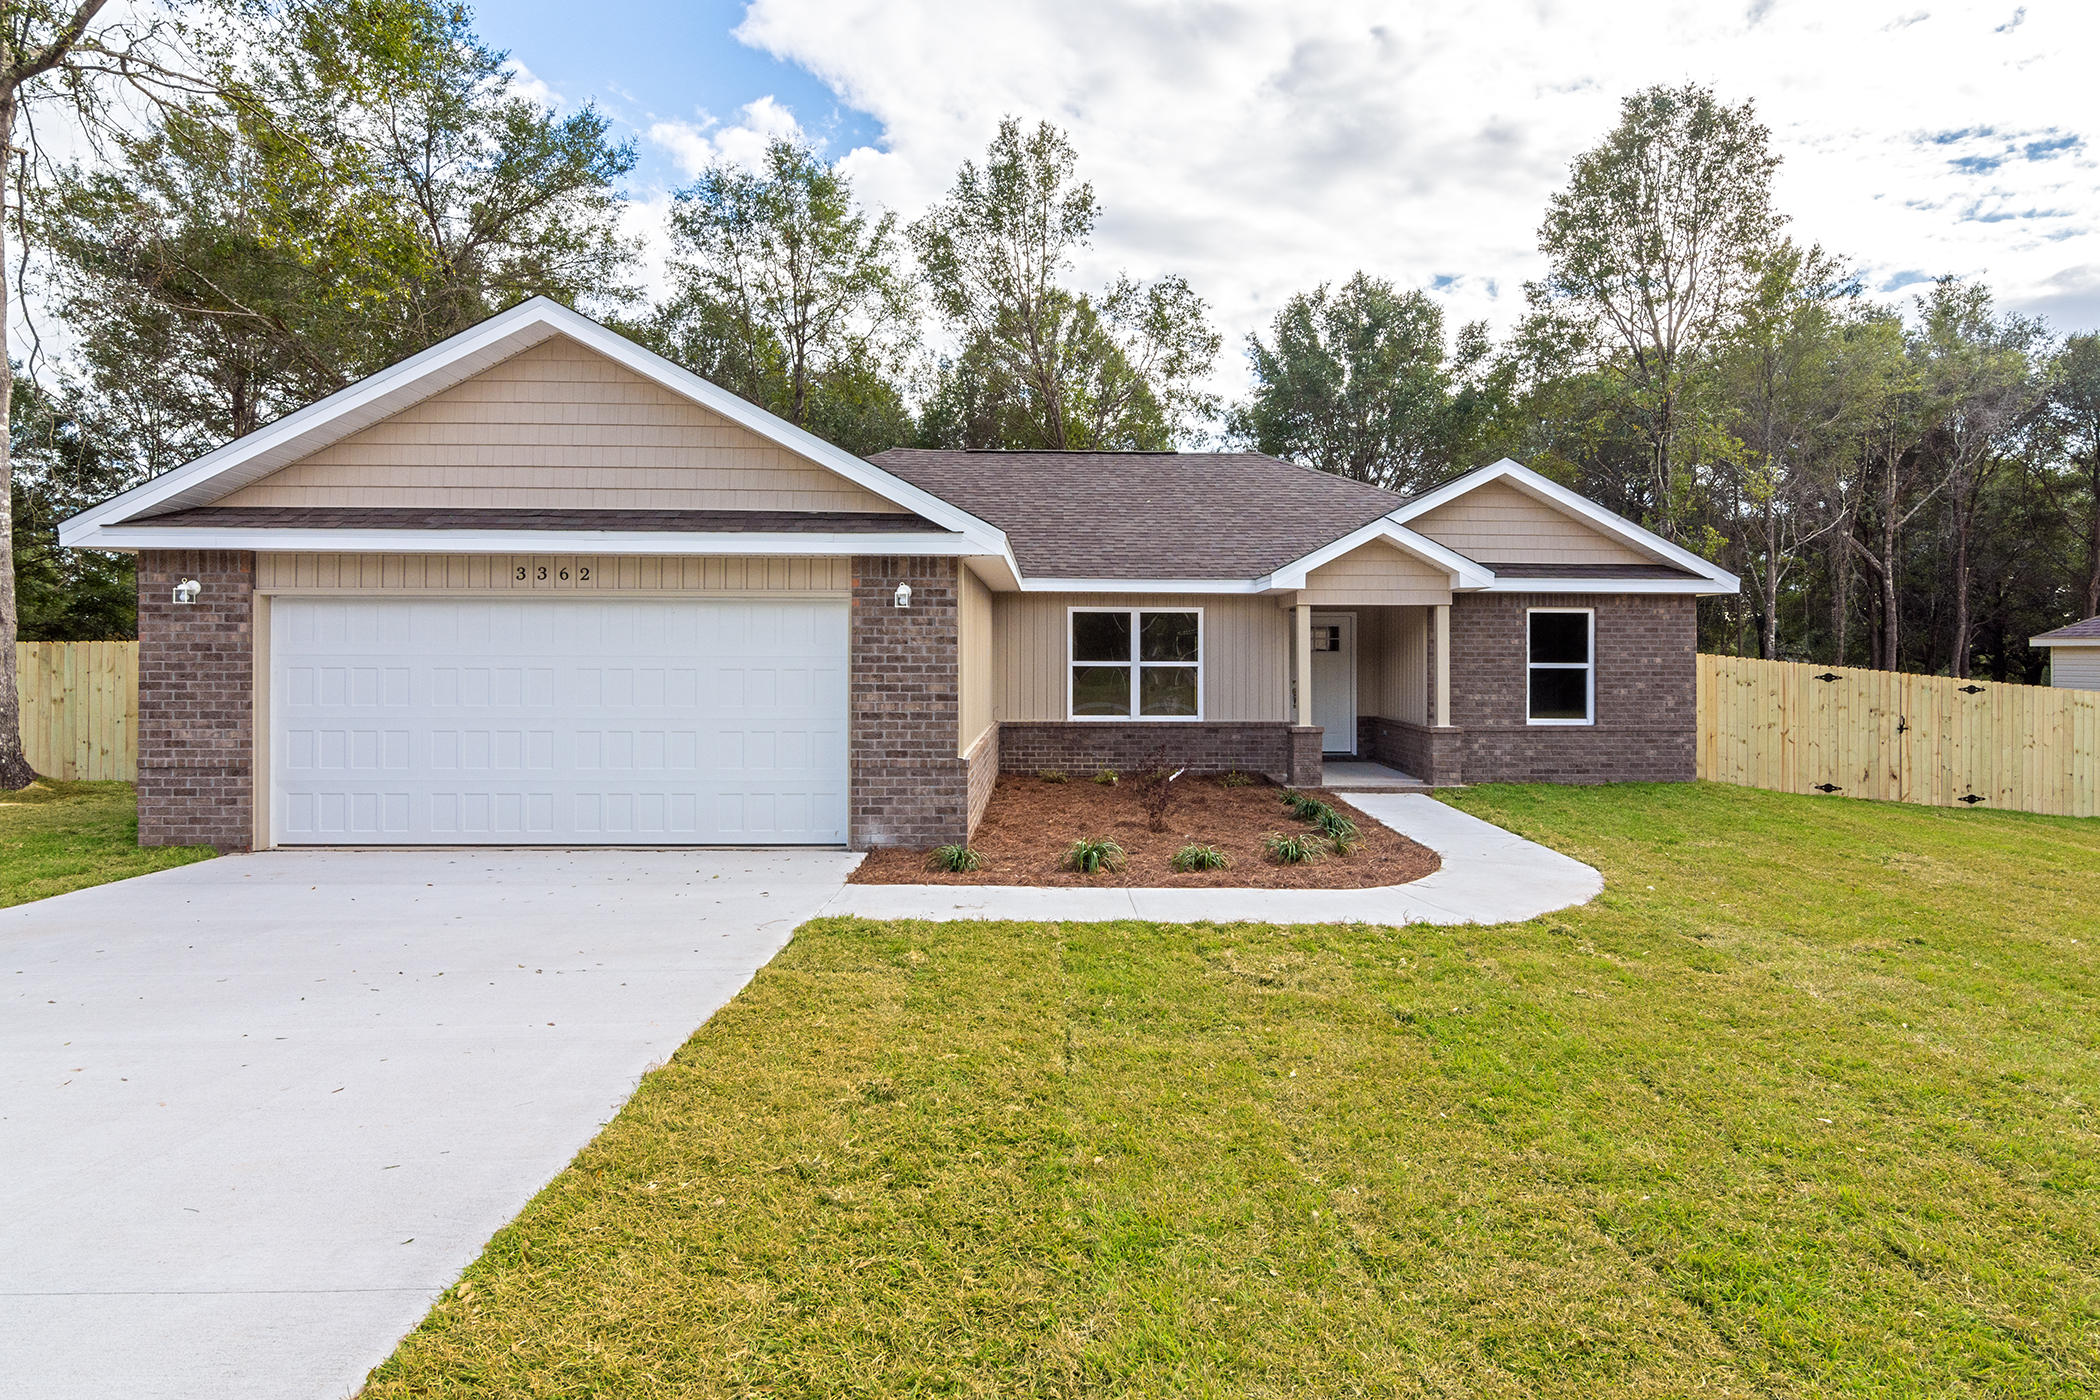 Photo of home for sale at 6171 Anchors, Crestview FL